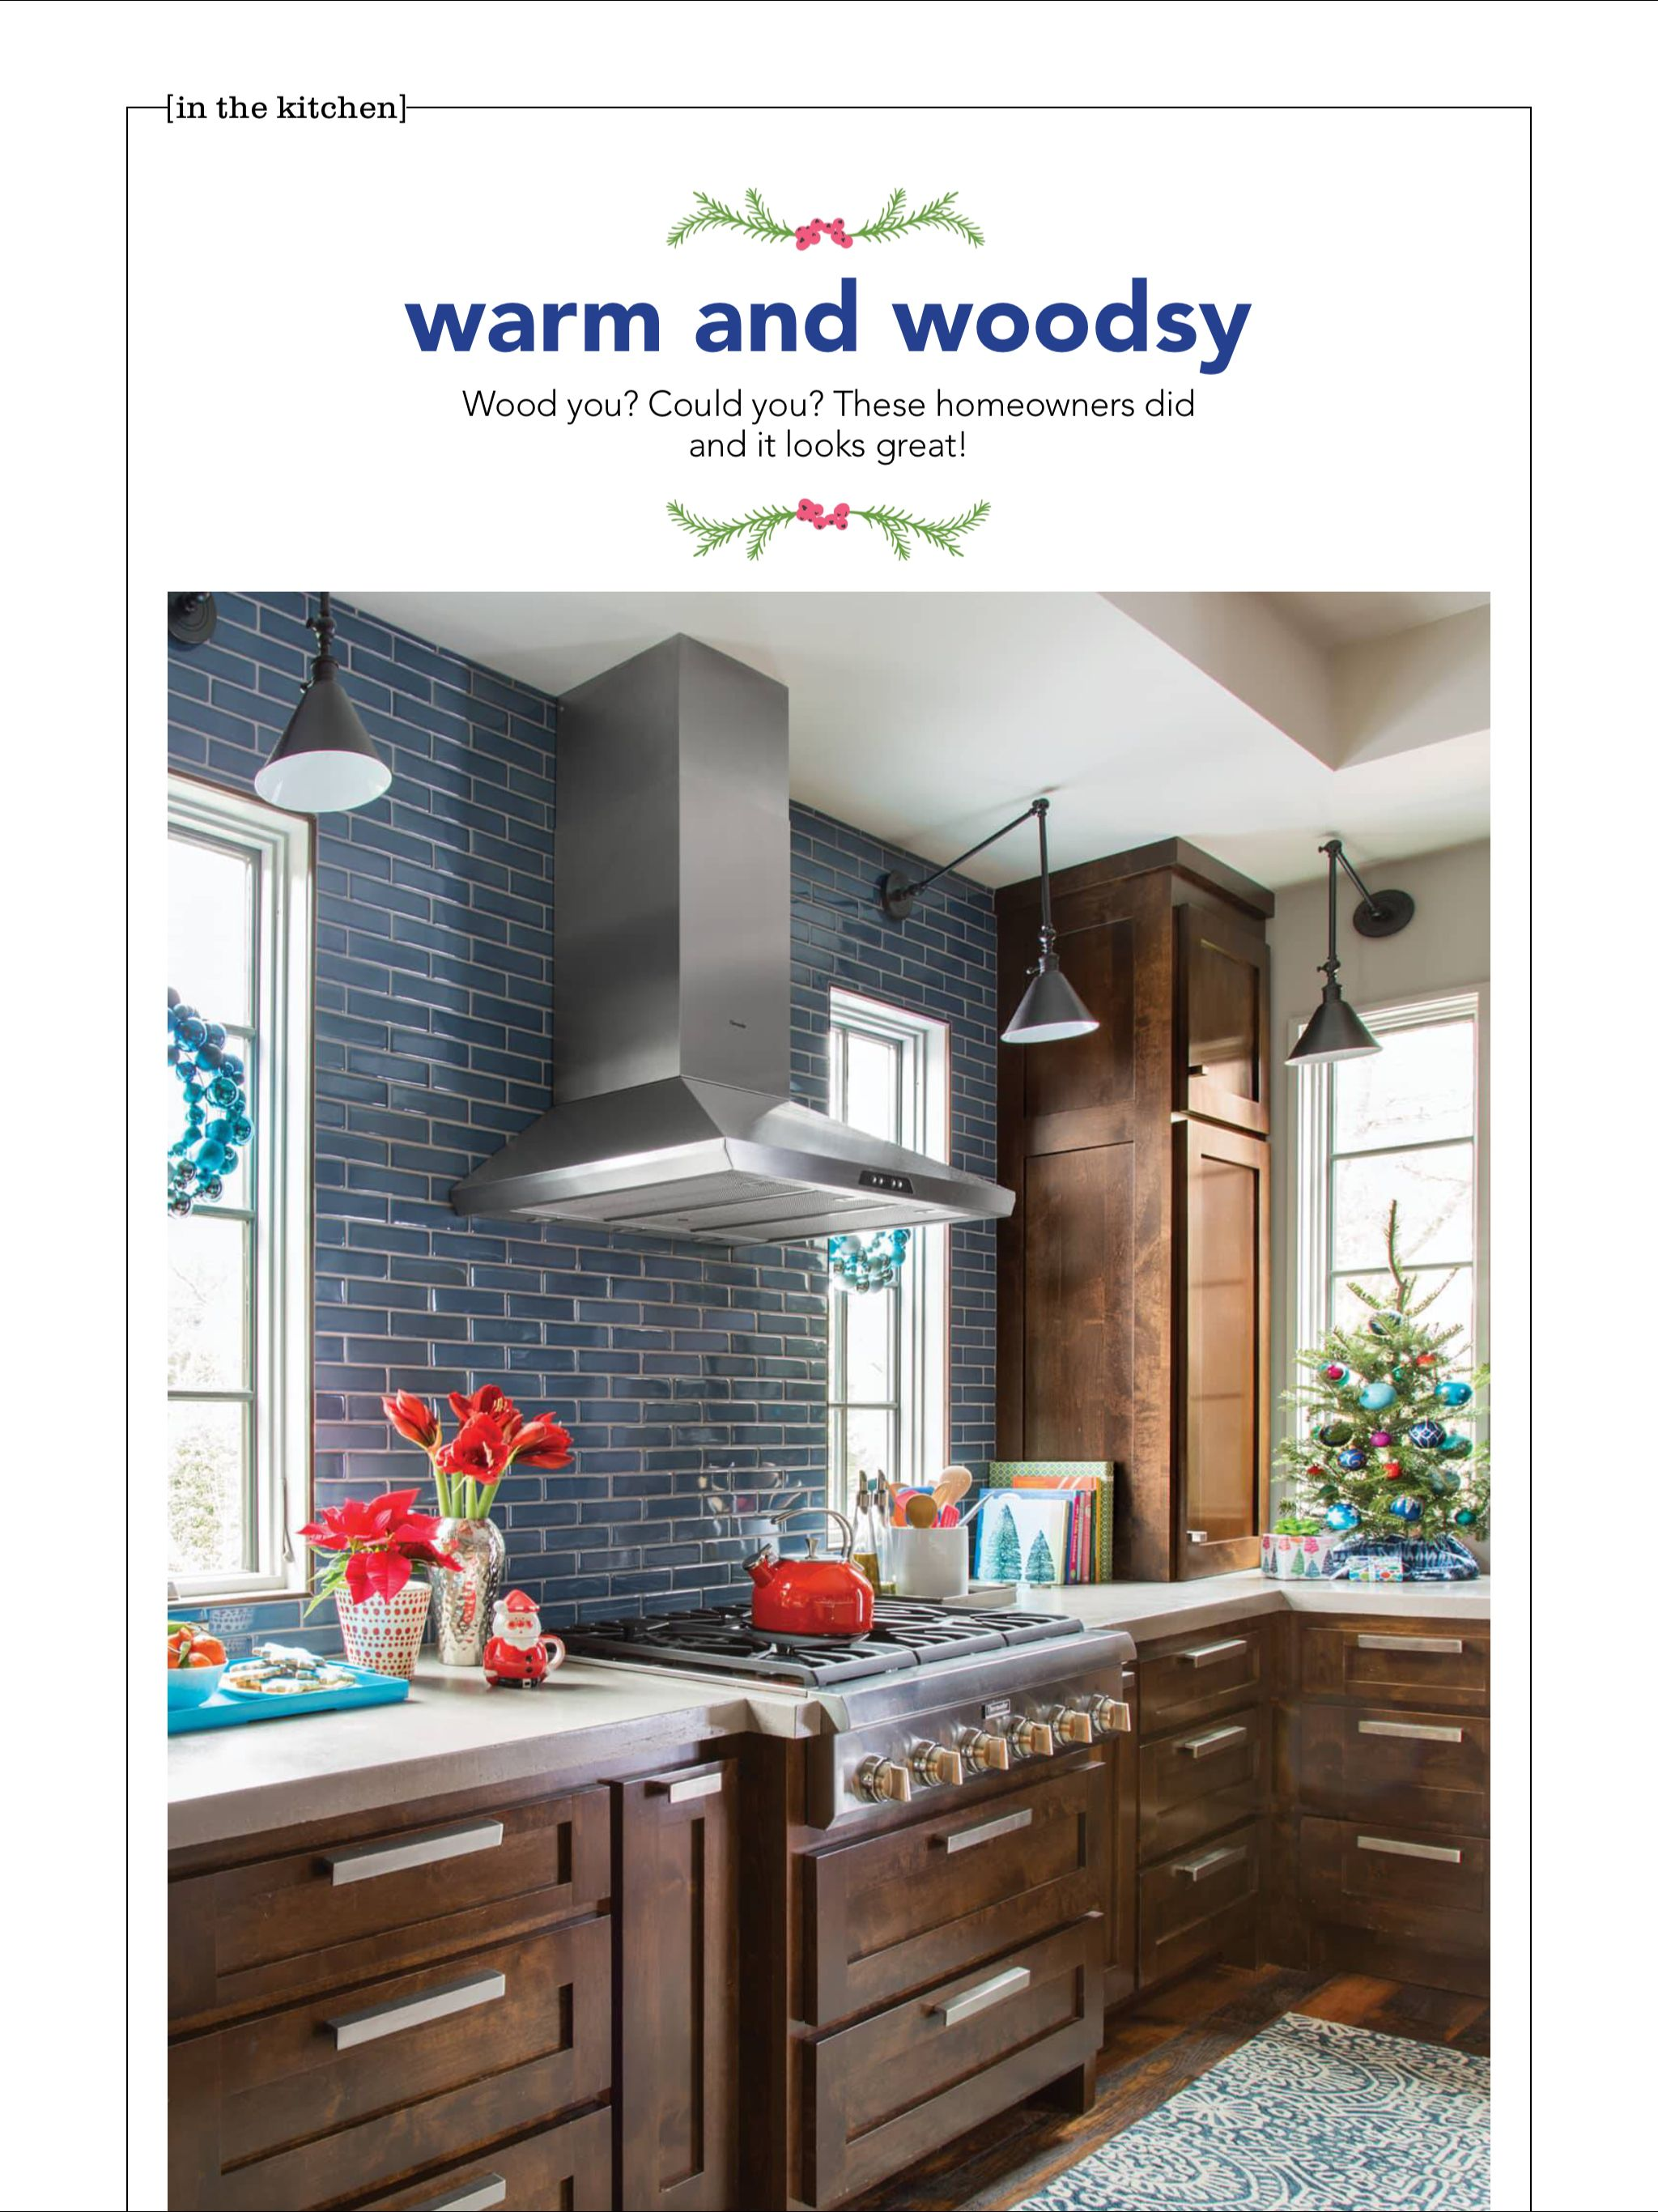 Warm woodsy from hgtv magazine december read it on the texture app unlimited access to top magazines also rh in pinterest